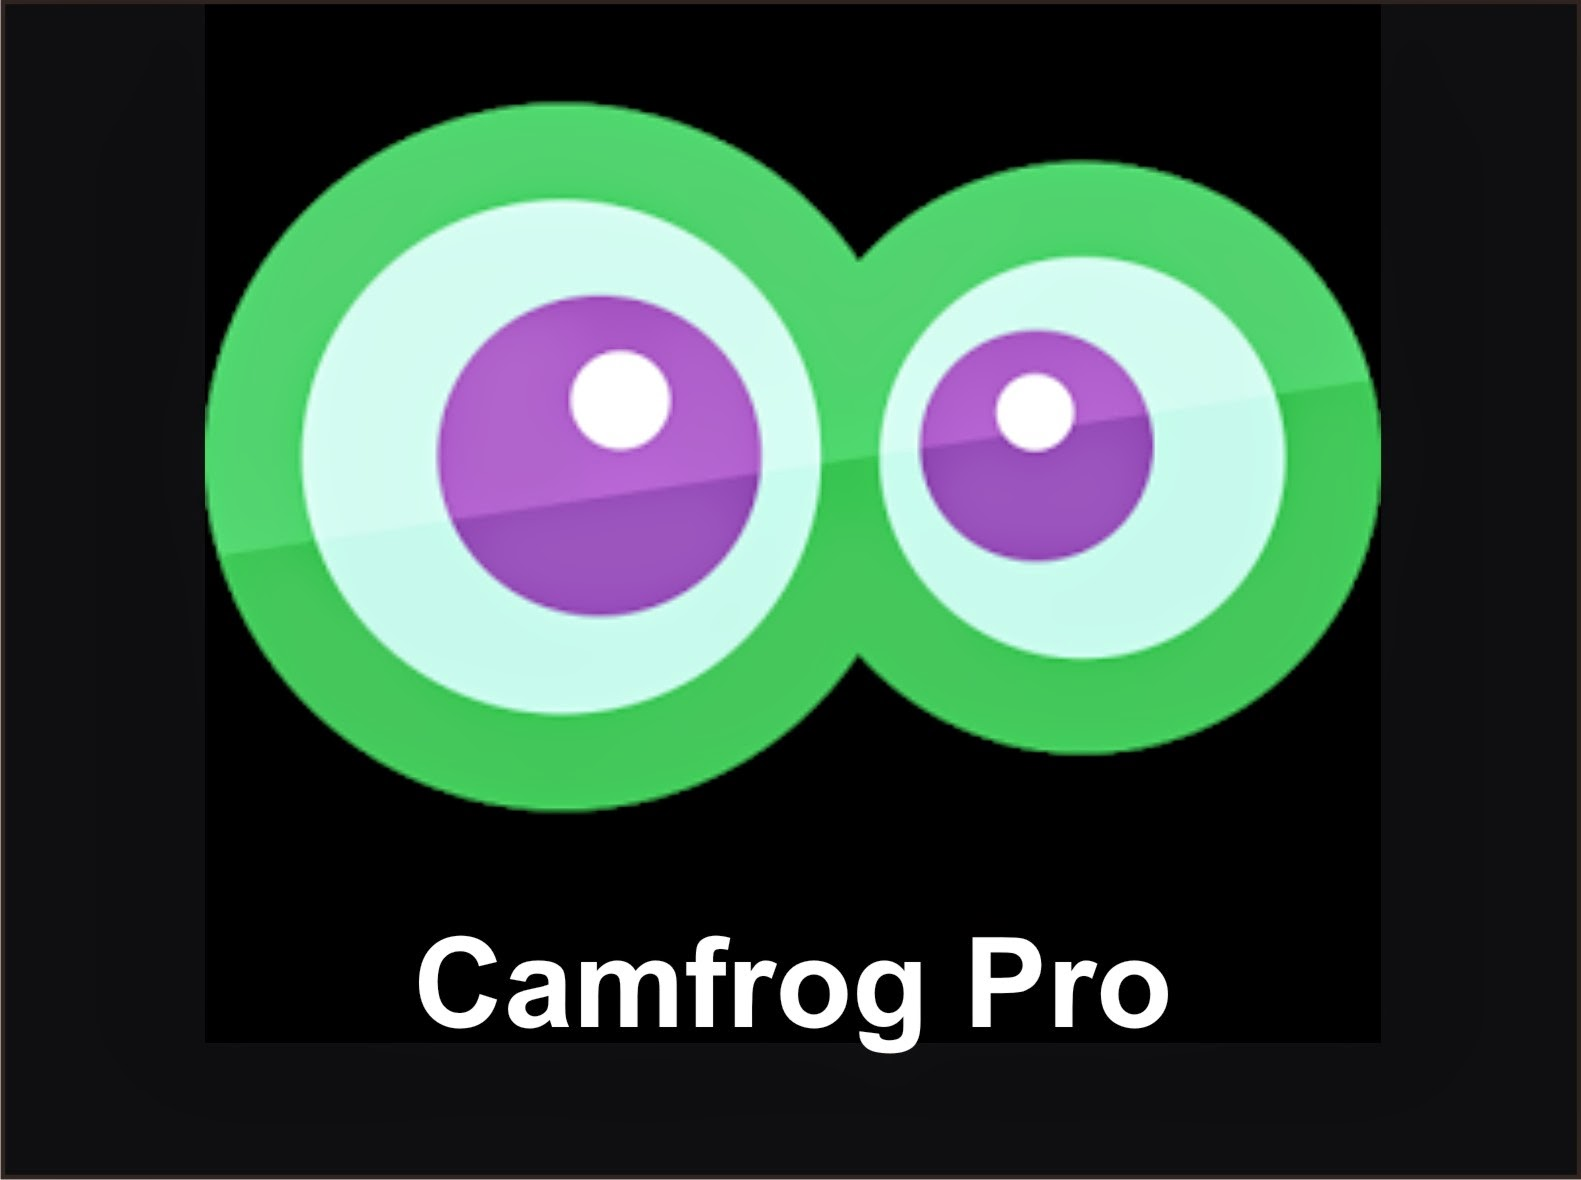 Camfrog Video Chat Pro v3.3.988 Apk Free Download: http://android-apkdata.blogspot.com/2015/04/camfrog-video-chat-pro-v33988-apk-free.html